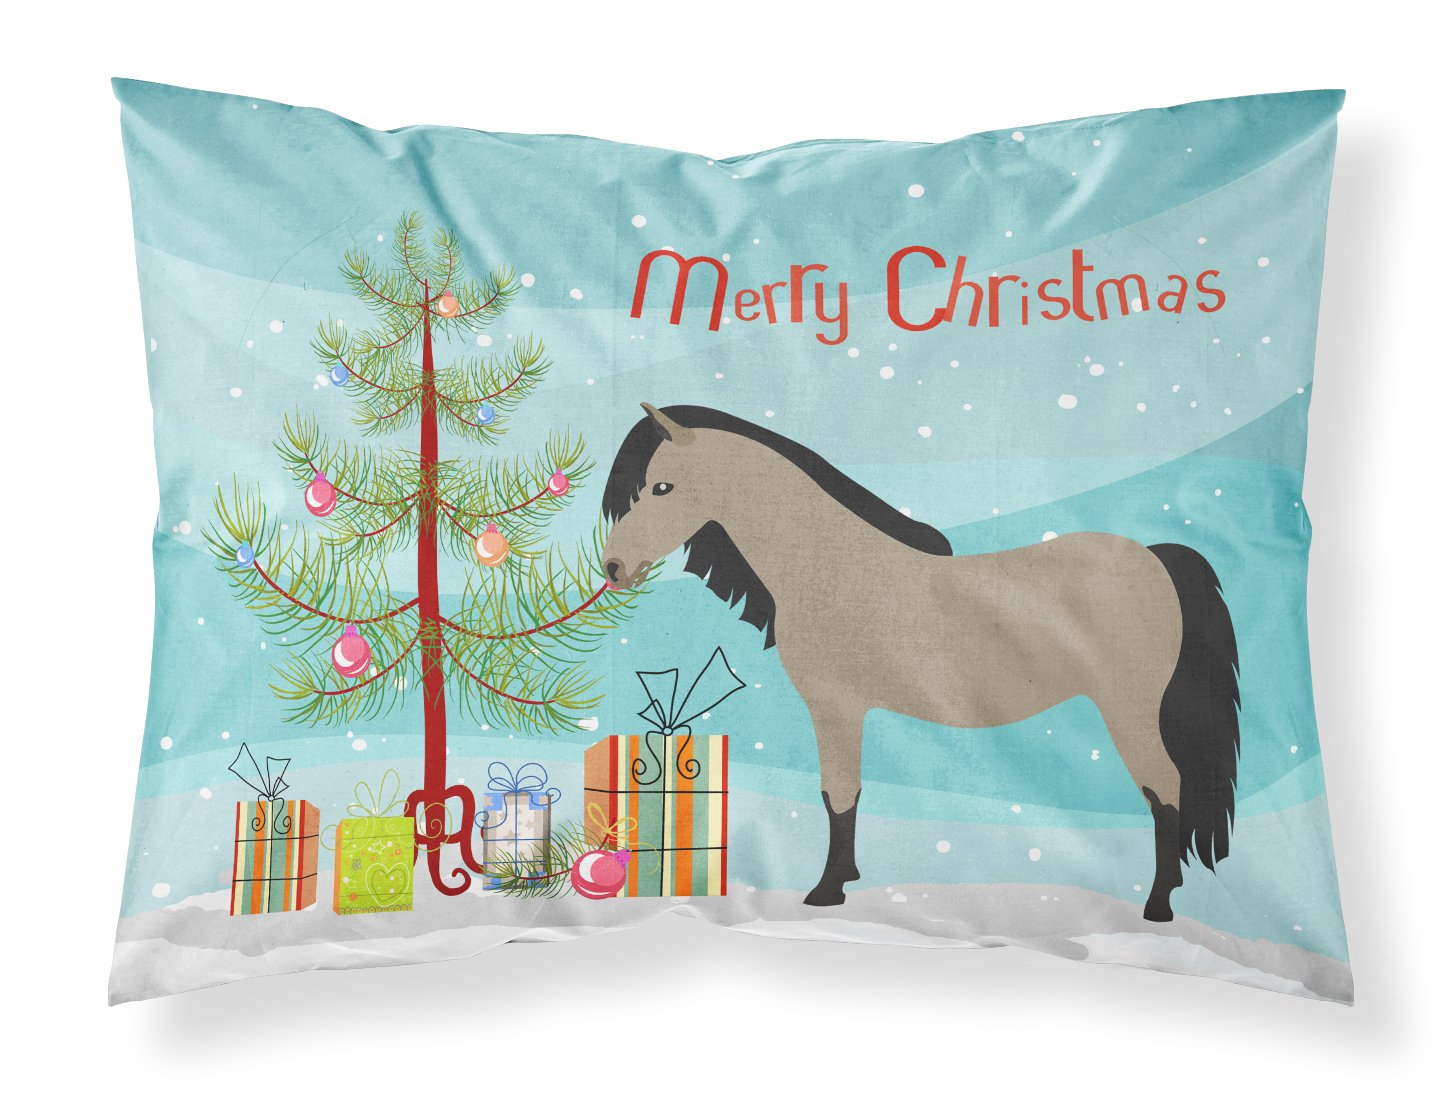 Welsh Pony Horse Christmas Fabric Standard Pillowcase BB9277PILLOWCASE by Caroline's Treasures